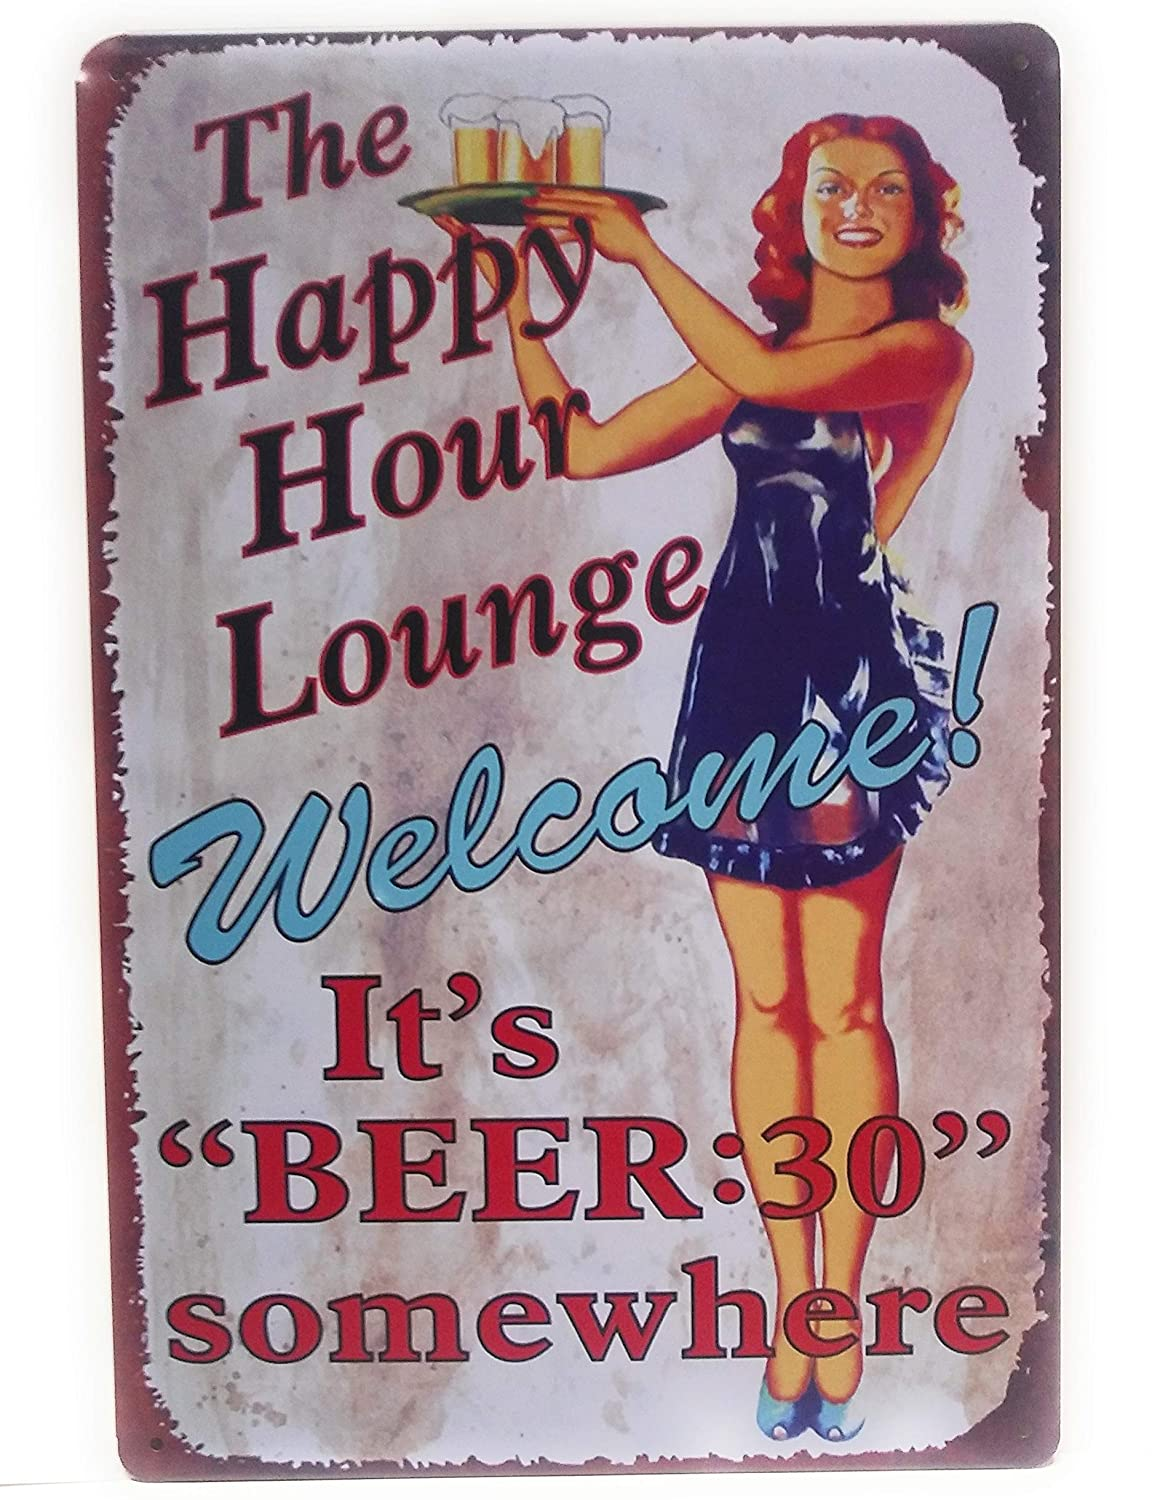 The Happy Hour Lounge Welcome! It's Beer 30 Somewhere, Funny Sign, Beer Sign, Happy Hour Sign, Wall Decor, Kitchen Sign, 8-inch by 12-inch Sign | TSC353 |